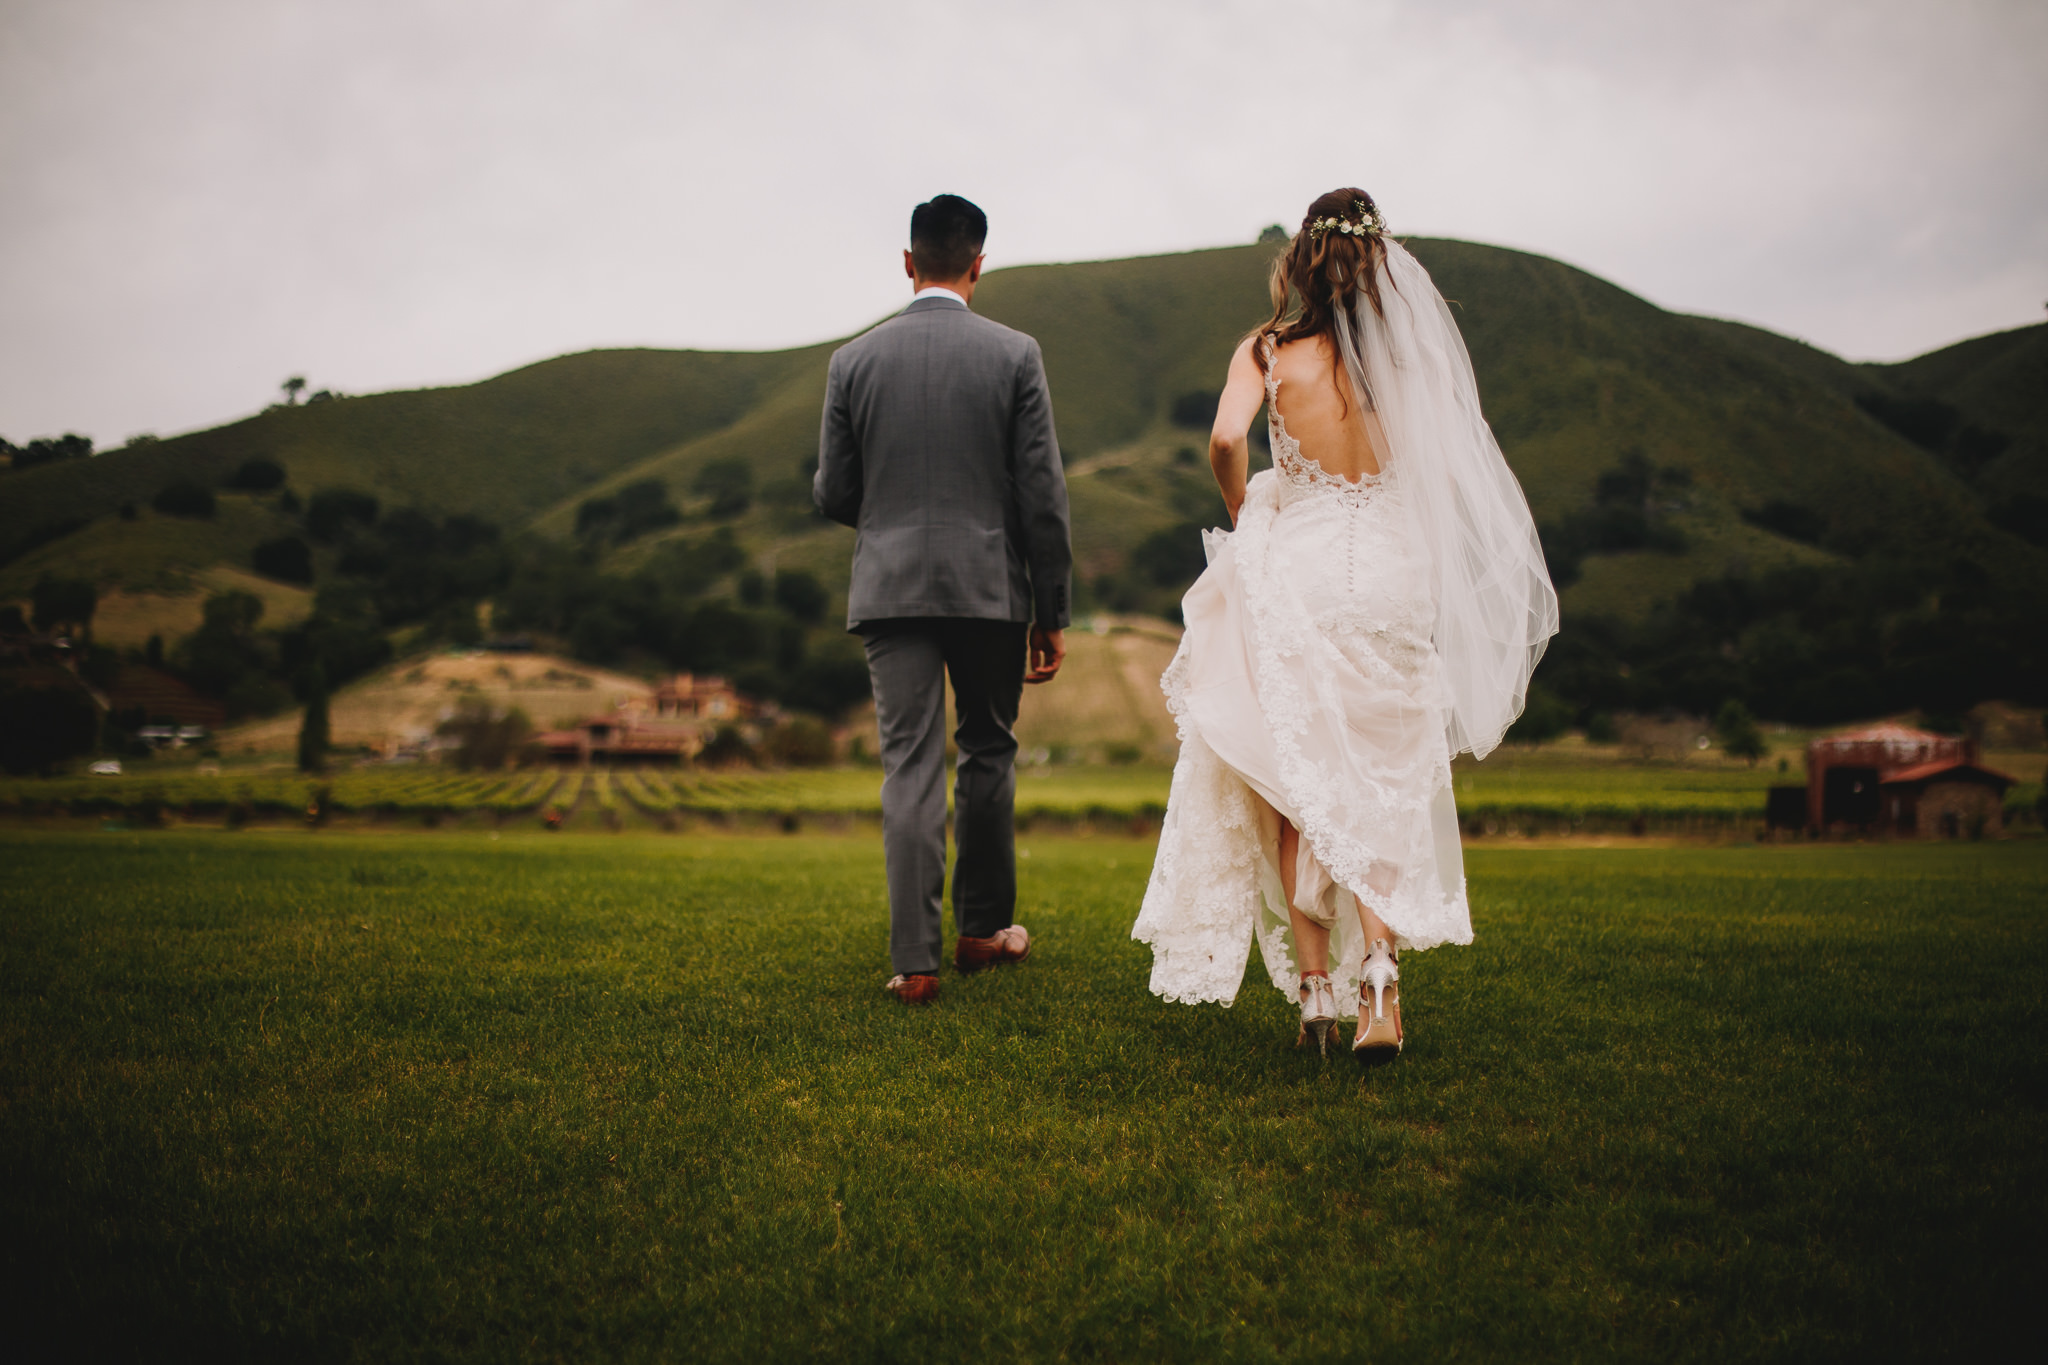 Archer Inspired Photography Kirigin Cellars Gilroy California SoCal Orange County Los Angeles Long Beach Lifestyle Wedding Elopement Engagement Photographer-197.jpg